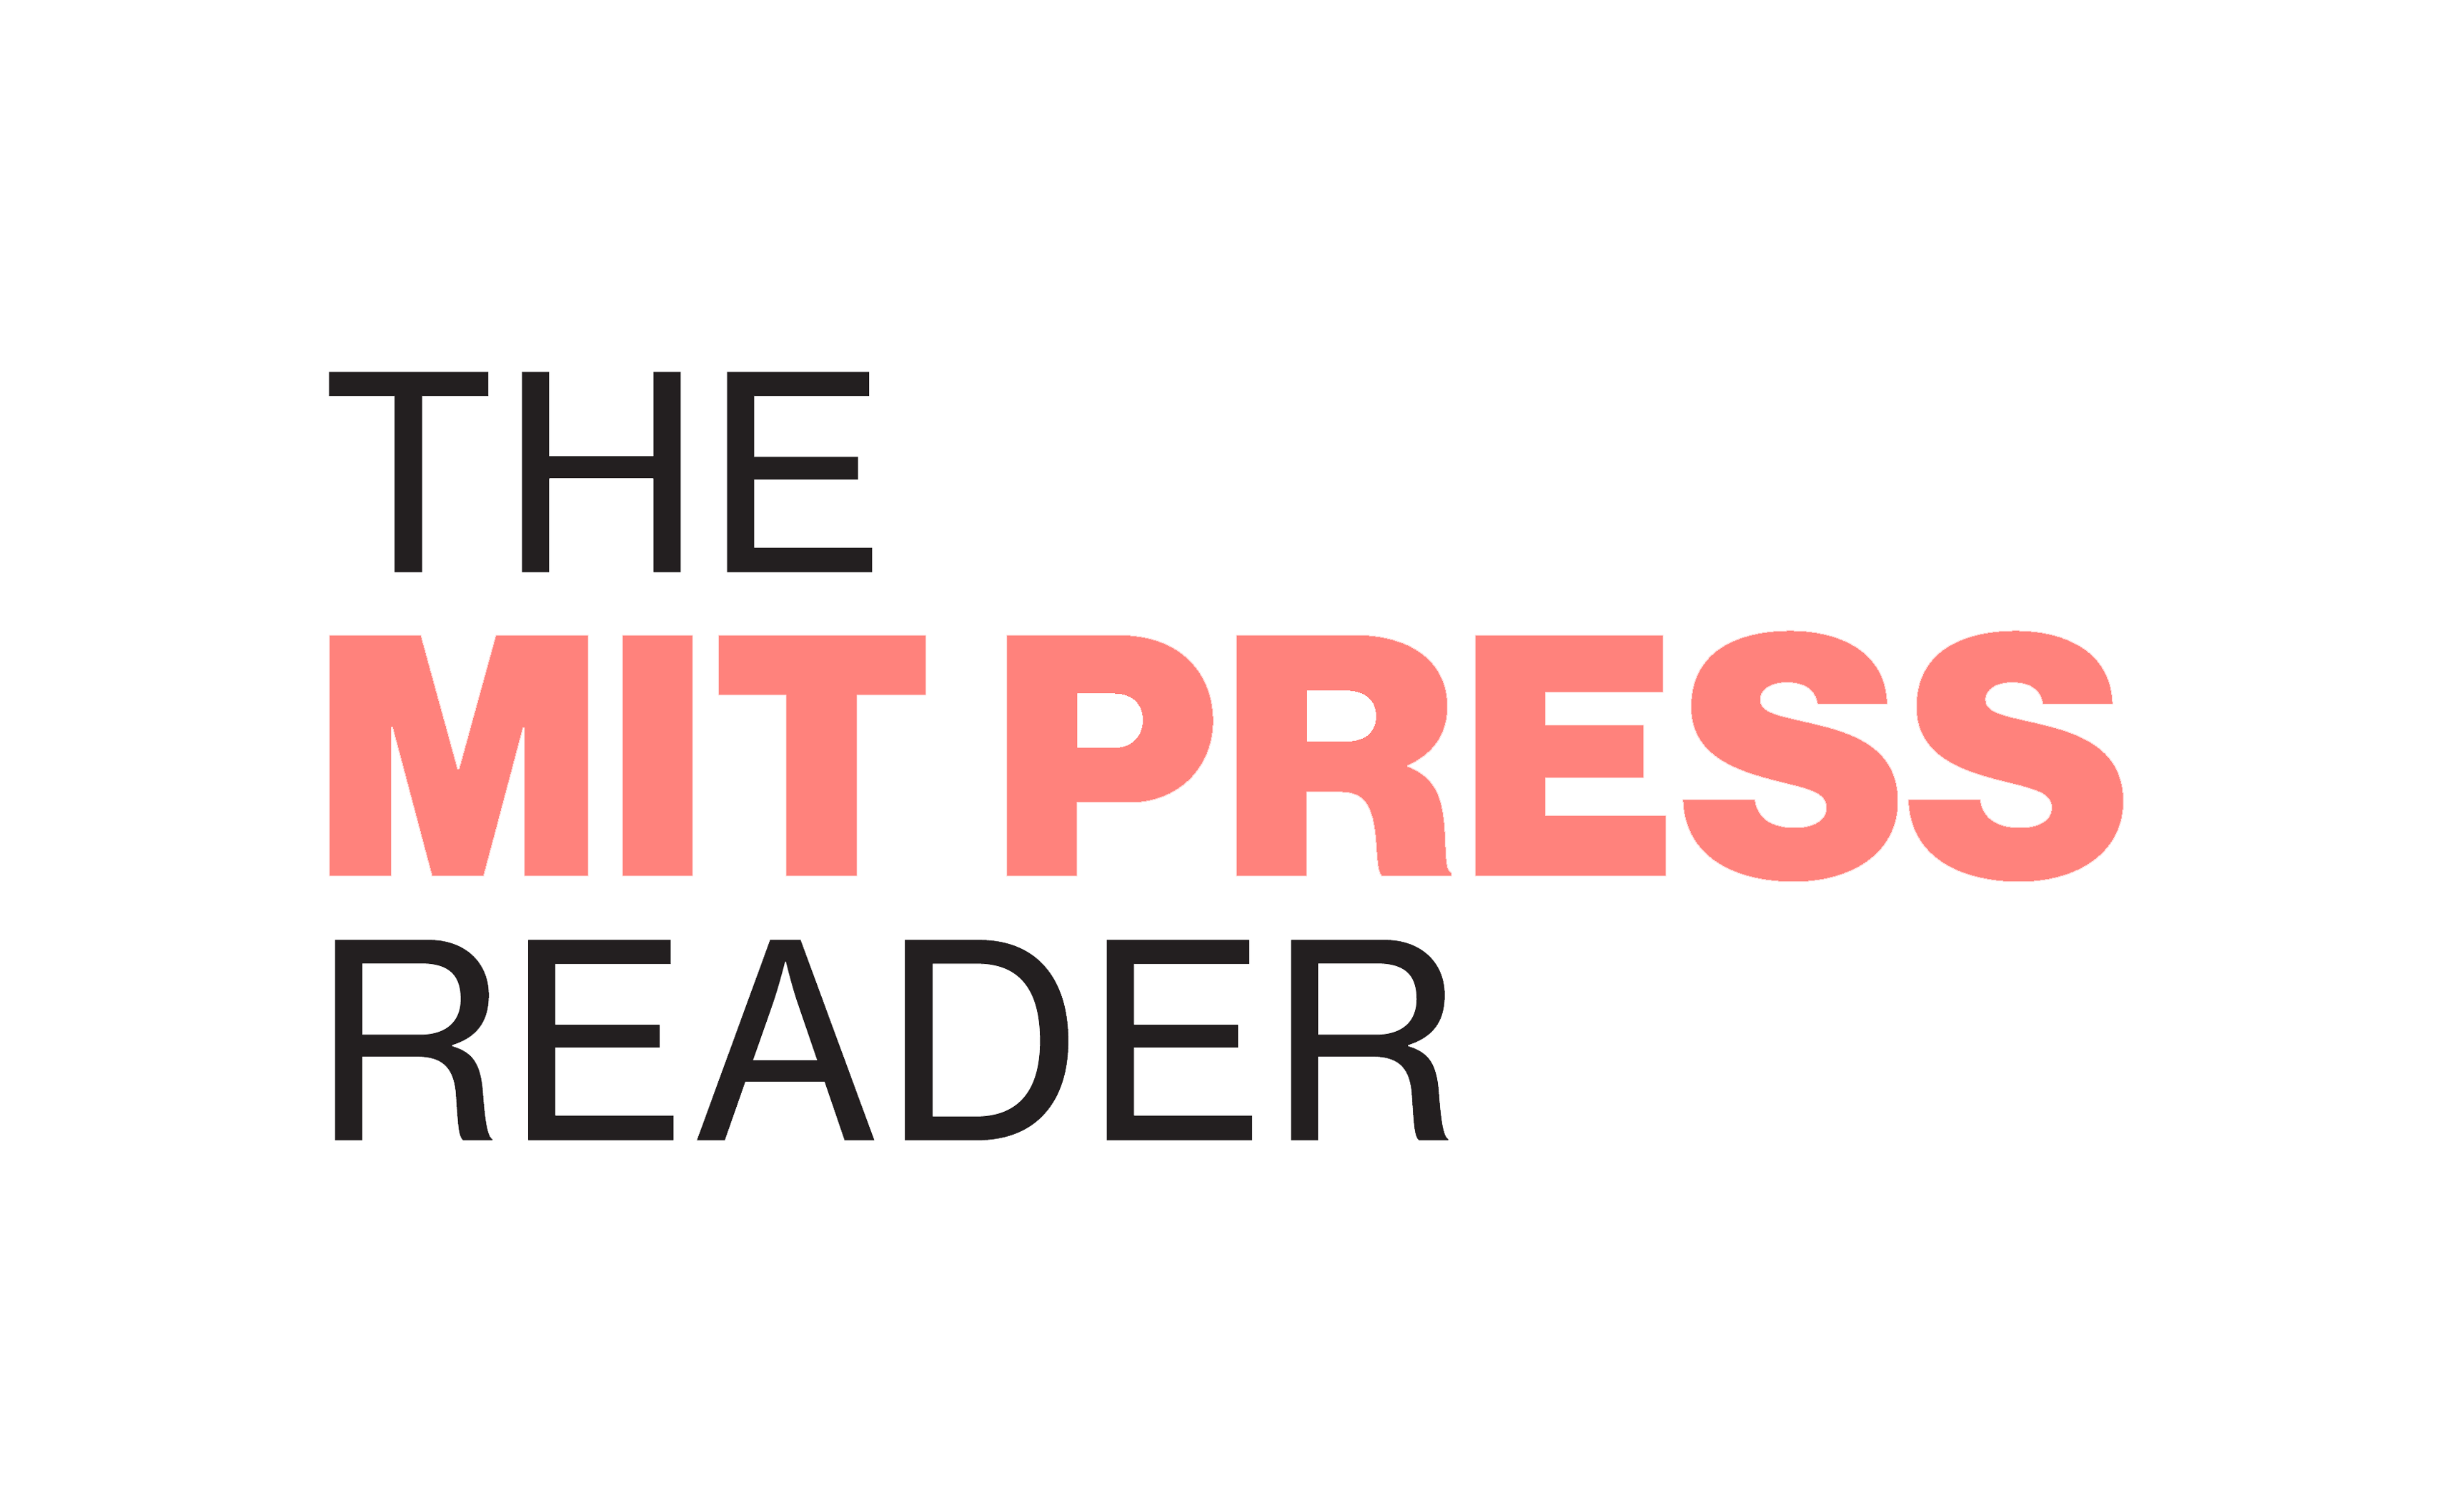 MIT Press Reader